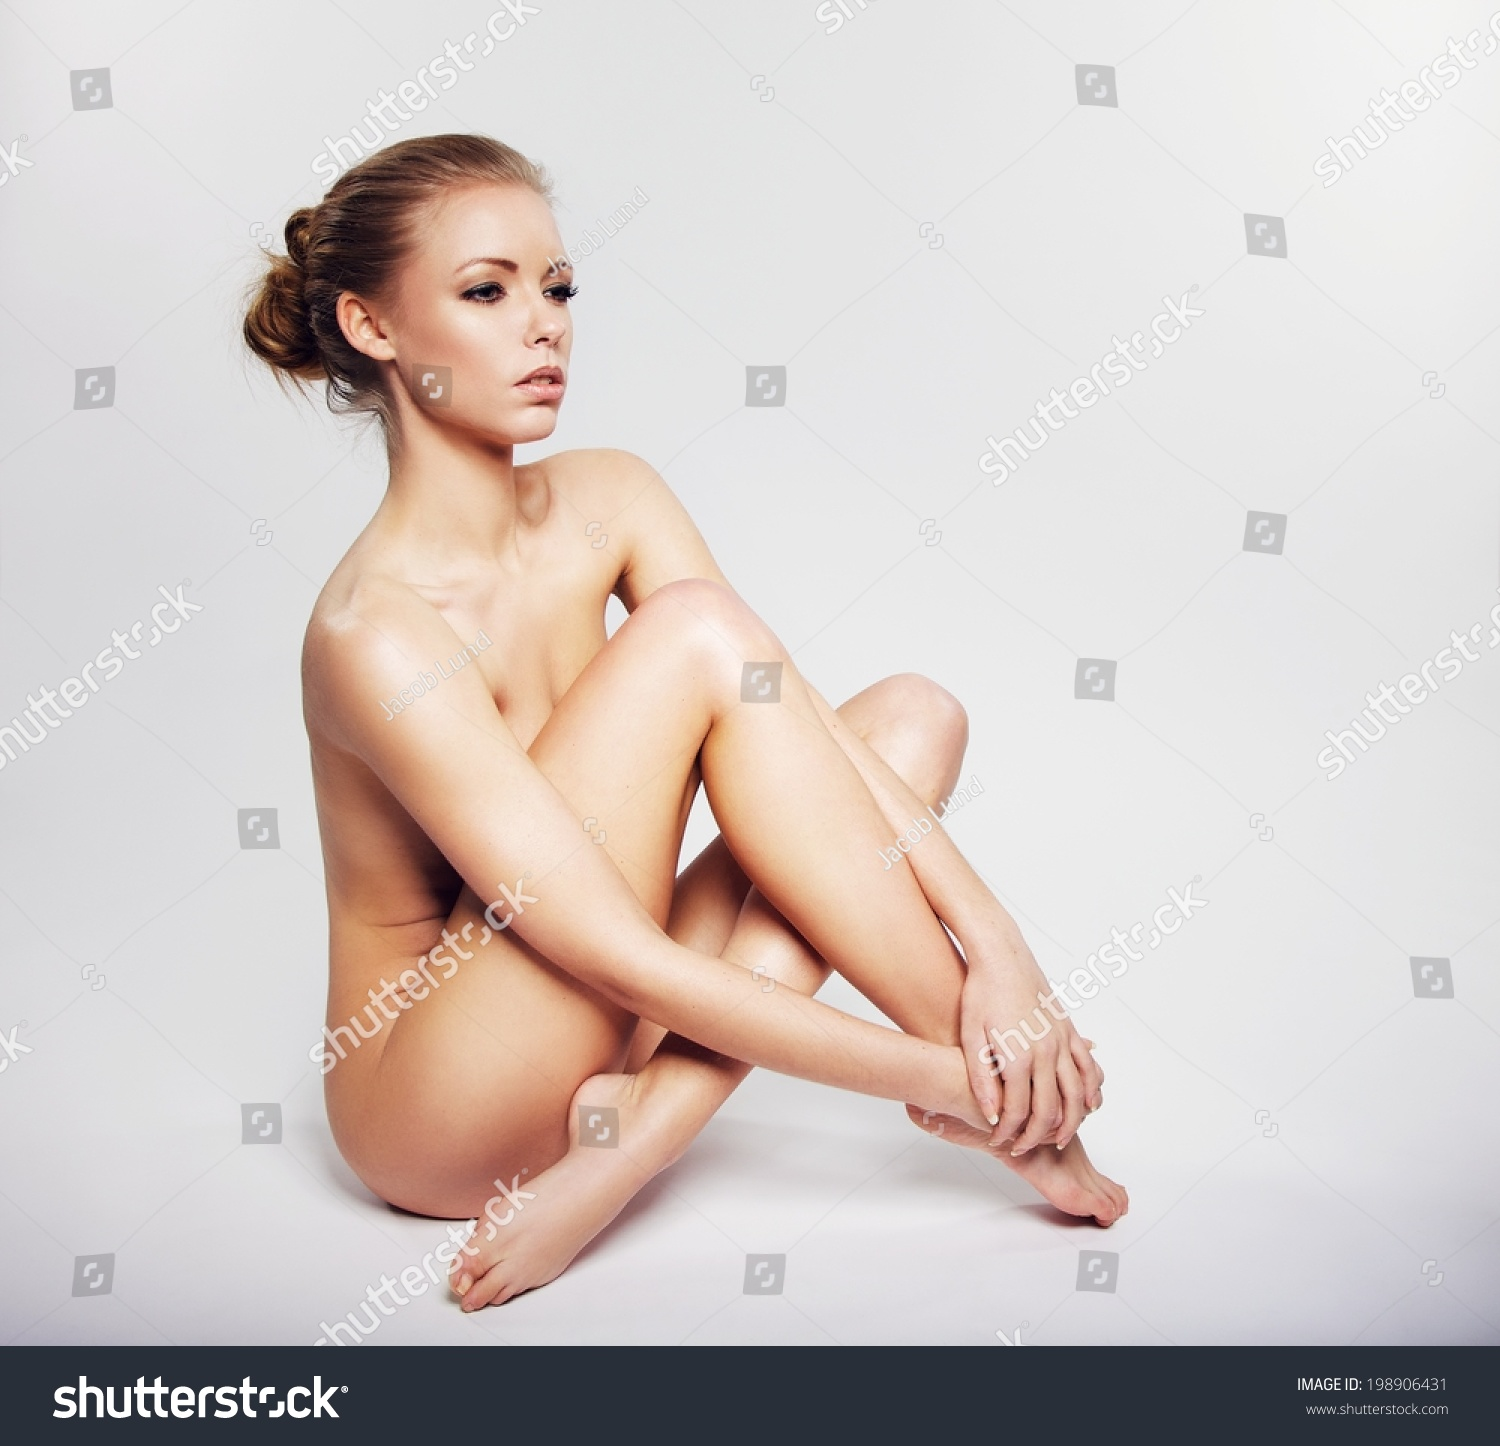 a looking nude model for